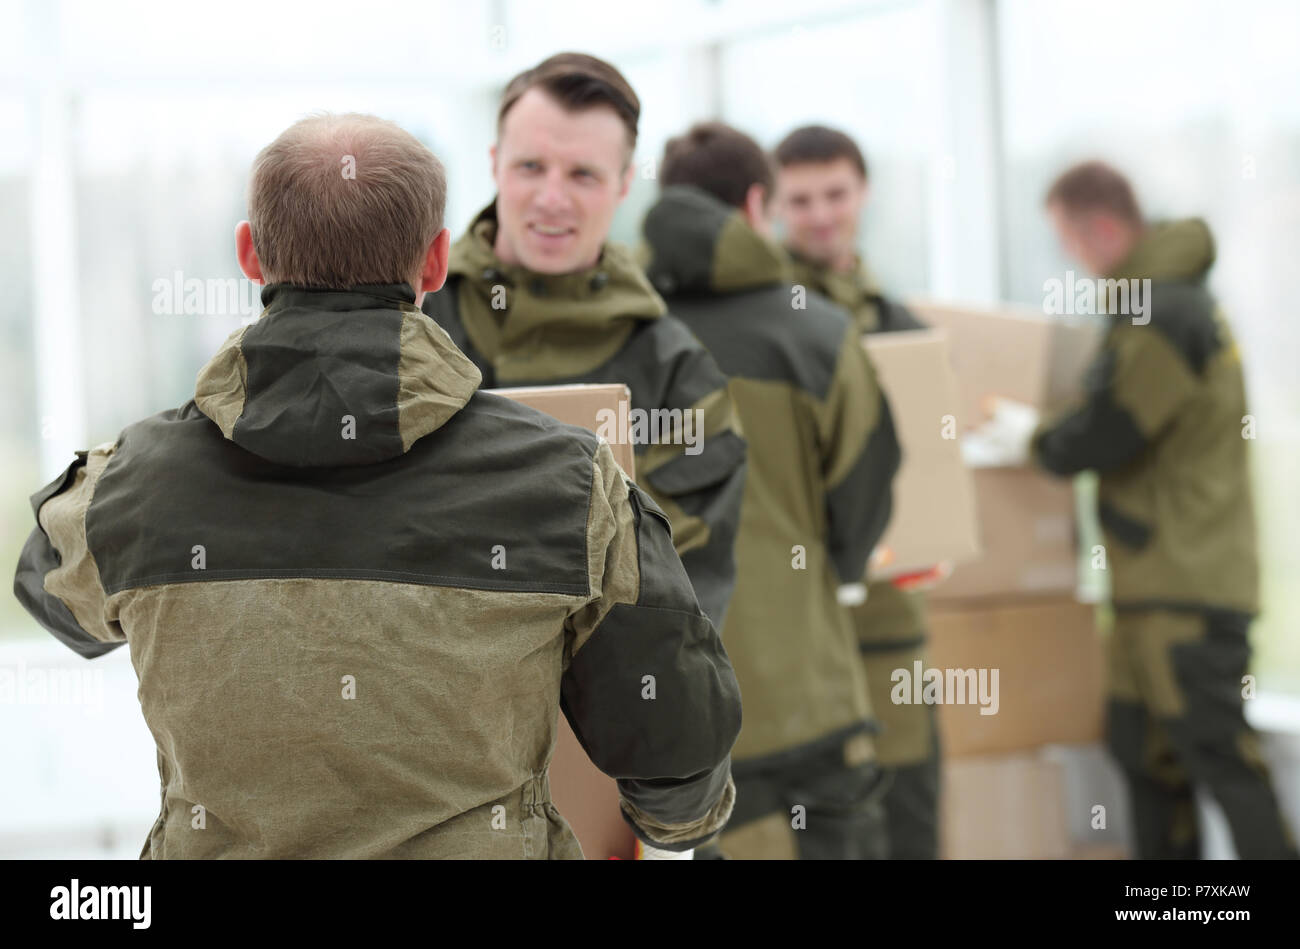 Happy male movers in uniform carrying boxes Stock Photo